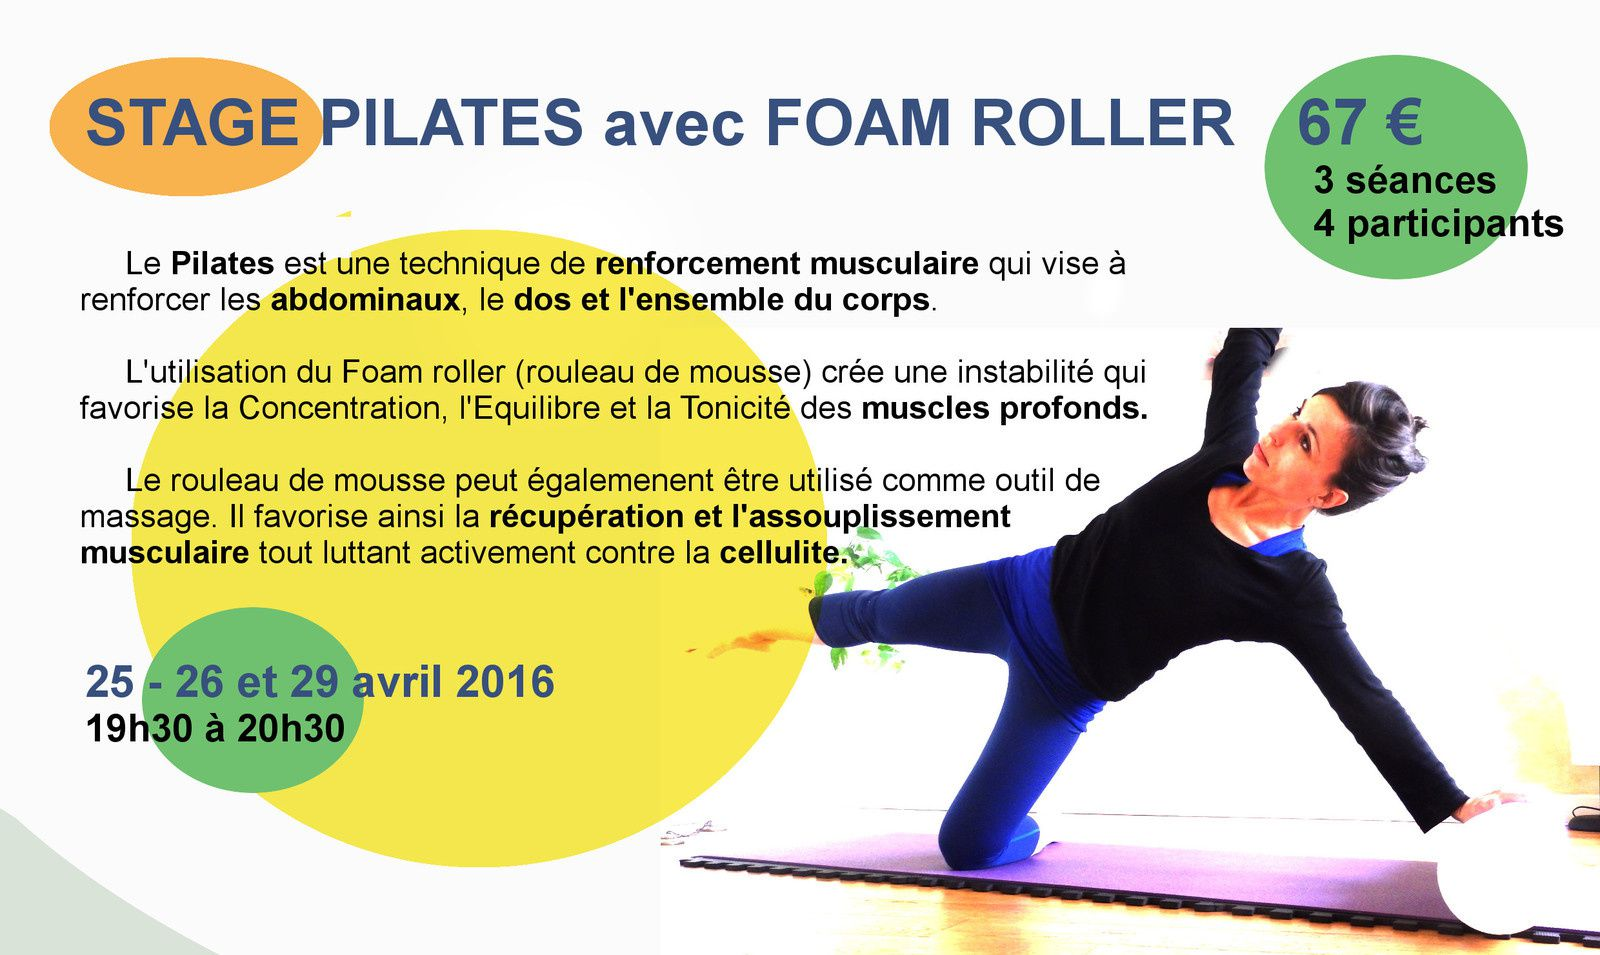 Stage de Pilates Foam Roller avril 2016